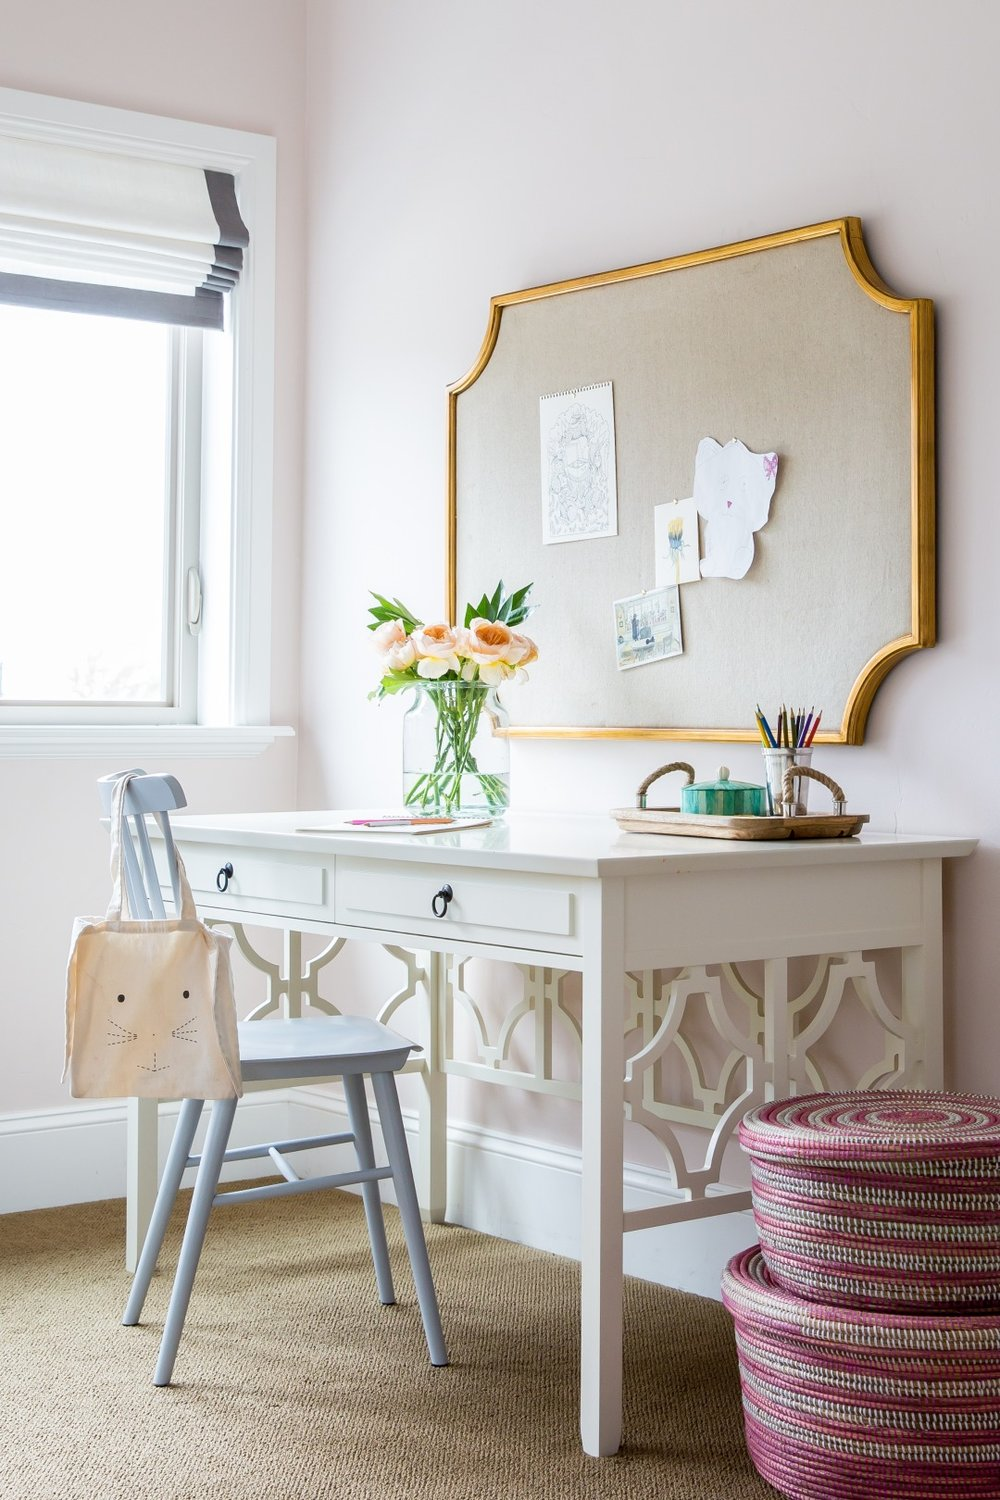 Trends We Love: Pale Neutrals